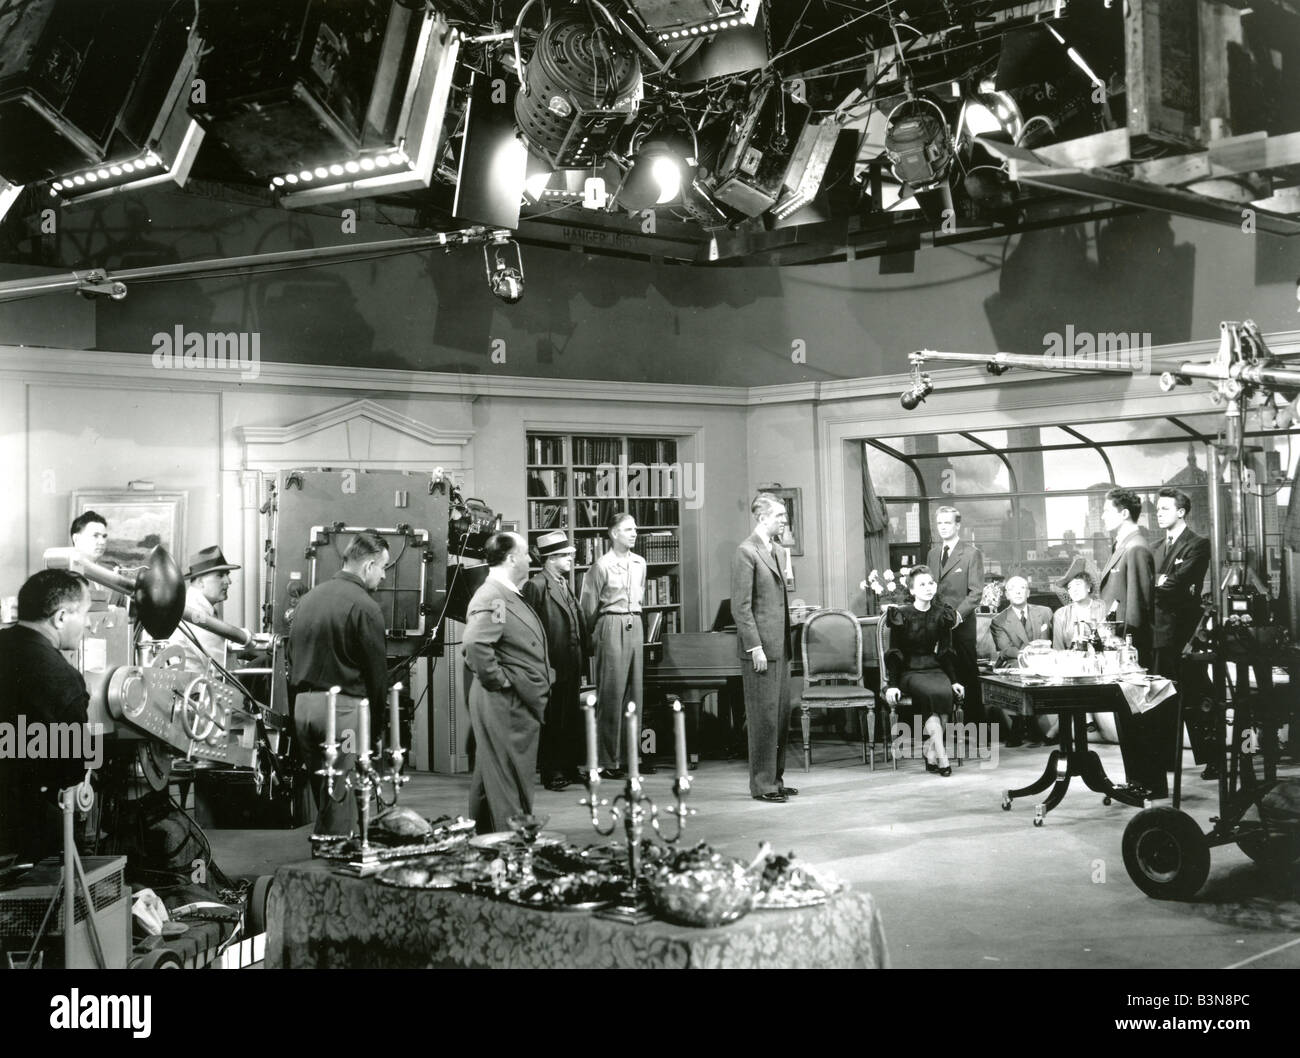 ROPE Alfred Hitchcock directing his 1948 Transatlantic film with James Stewart - Stock Image